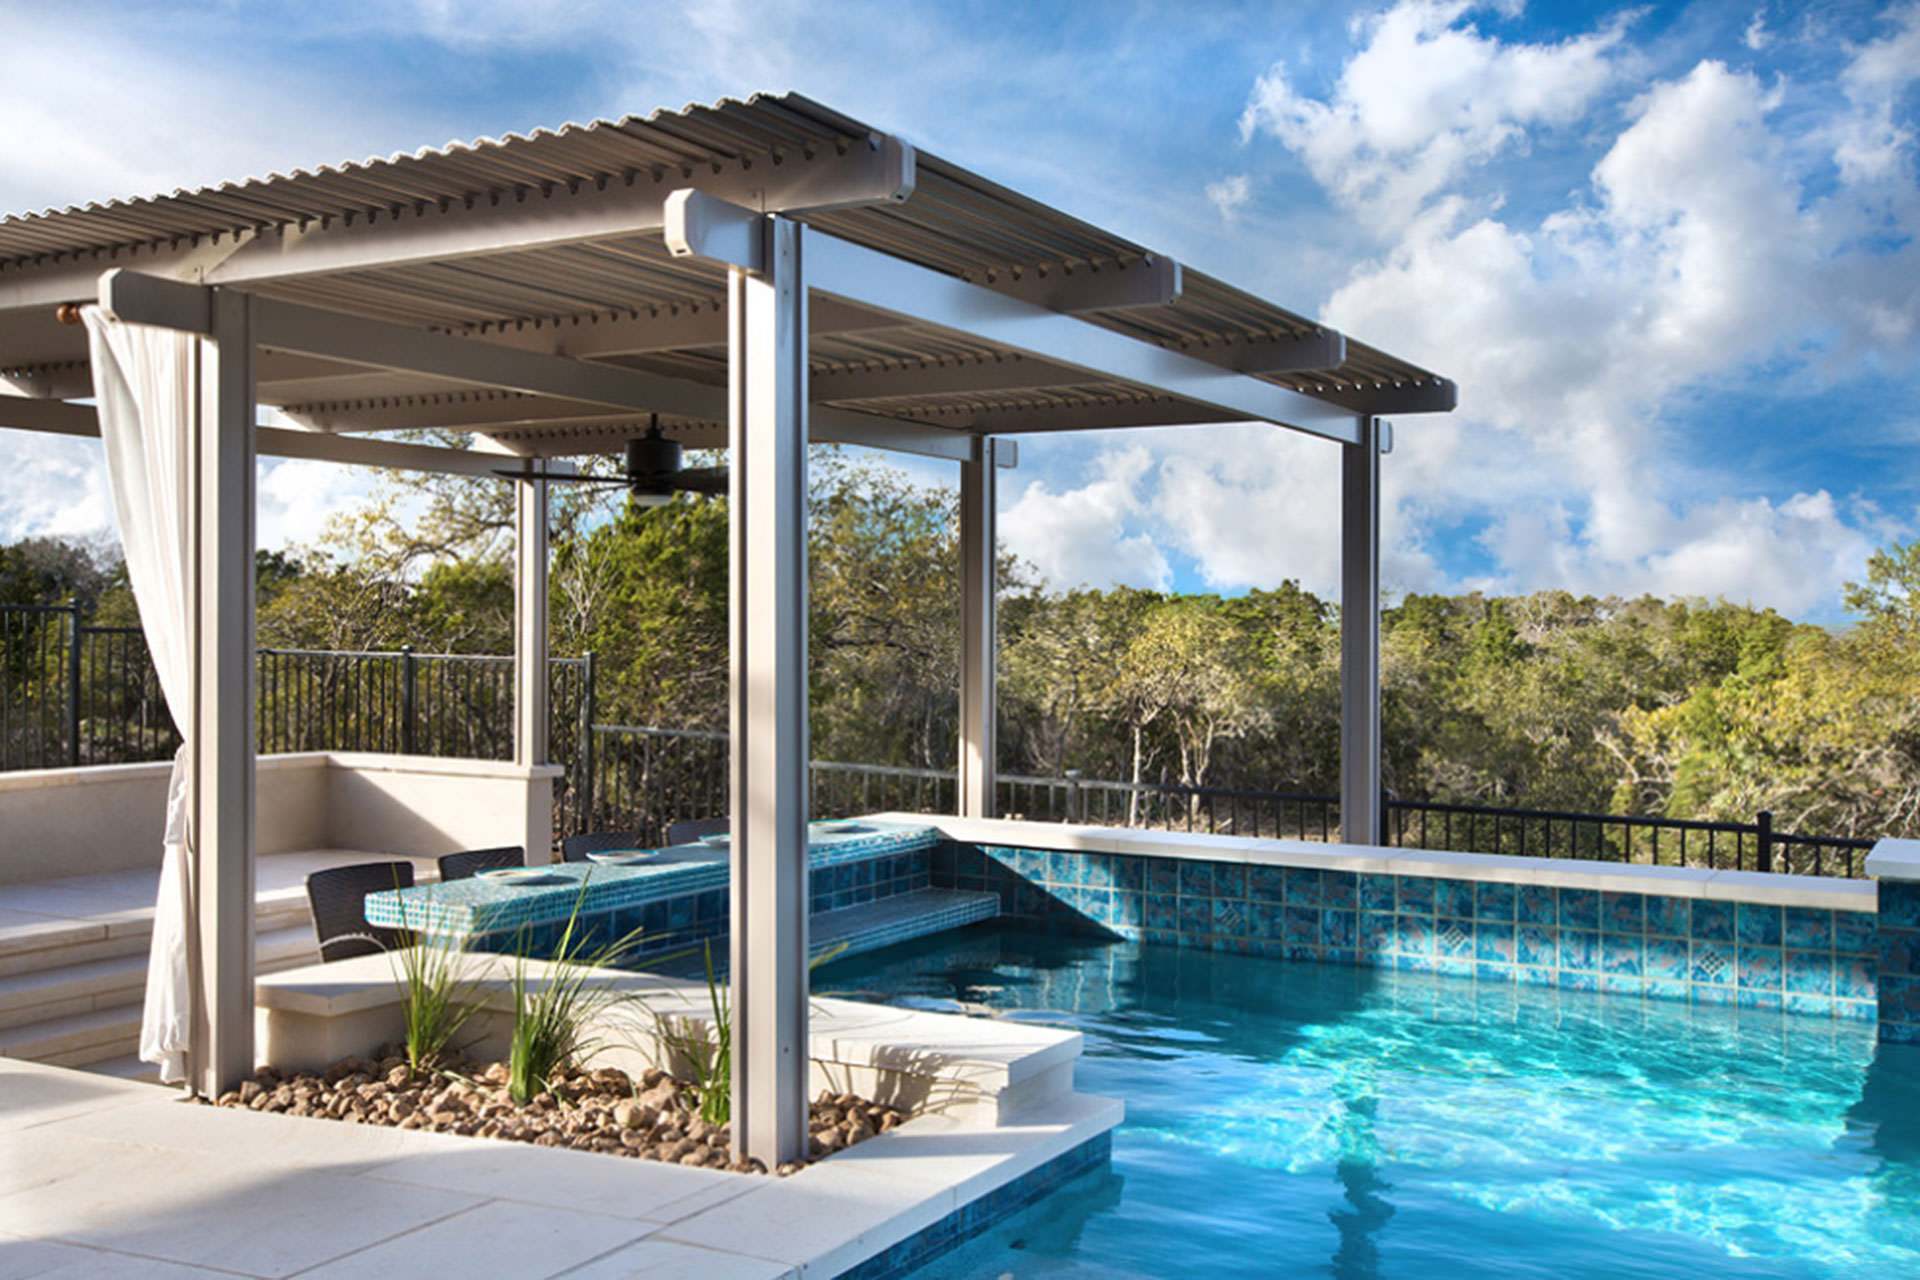 Pool Shade Ideas 7 Ways To Cover Your Swimming